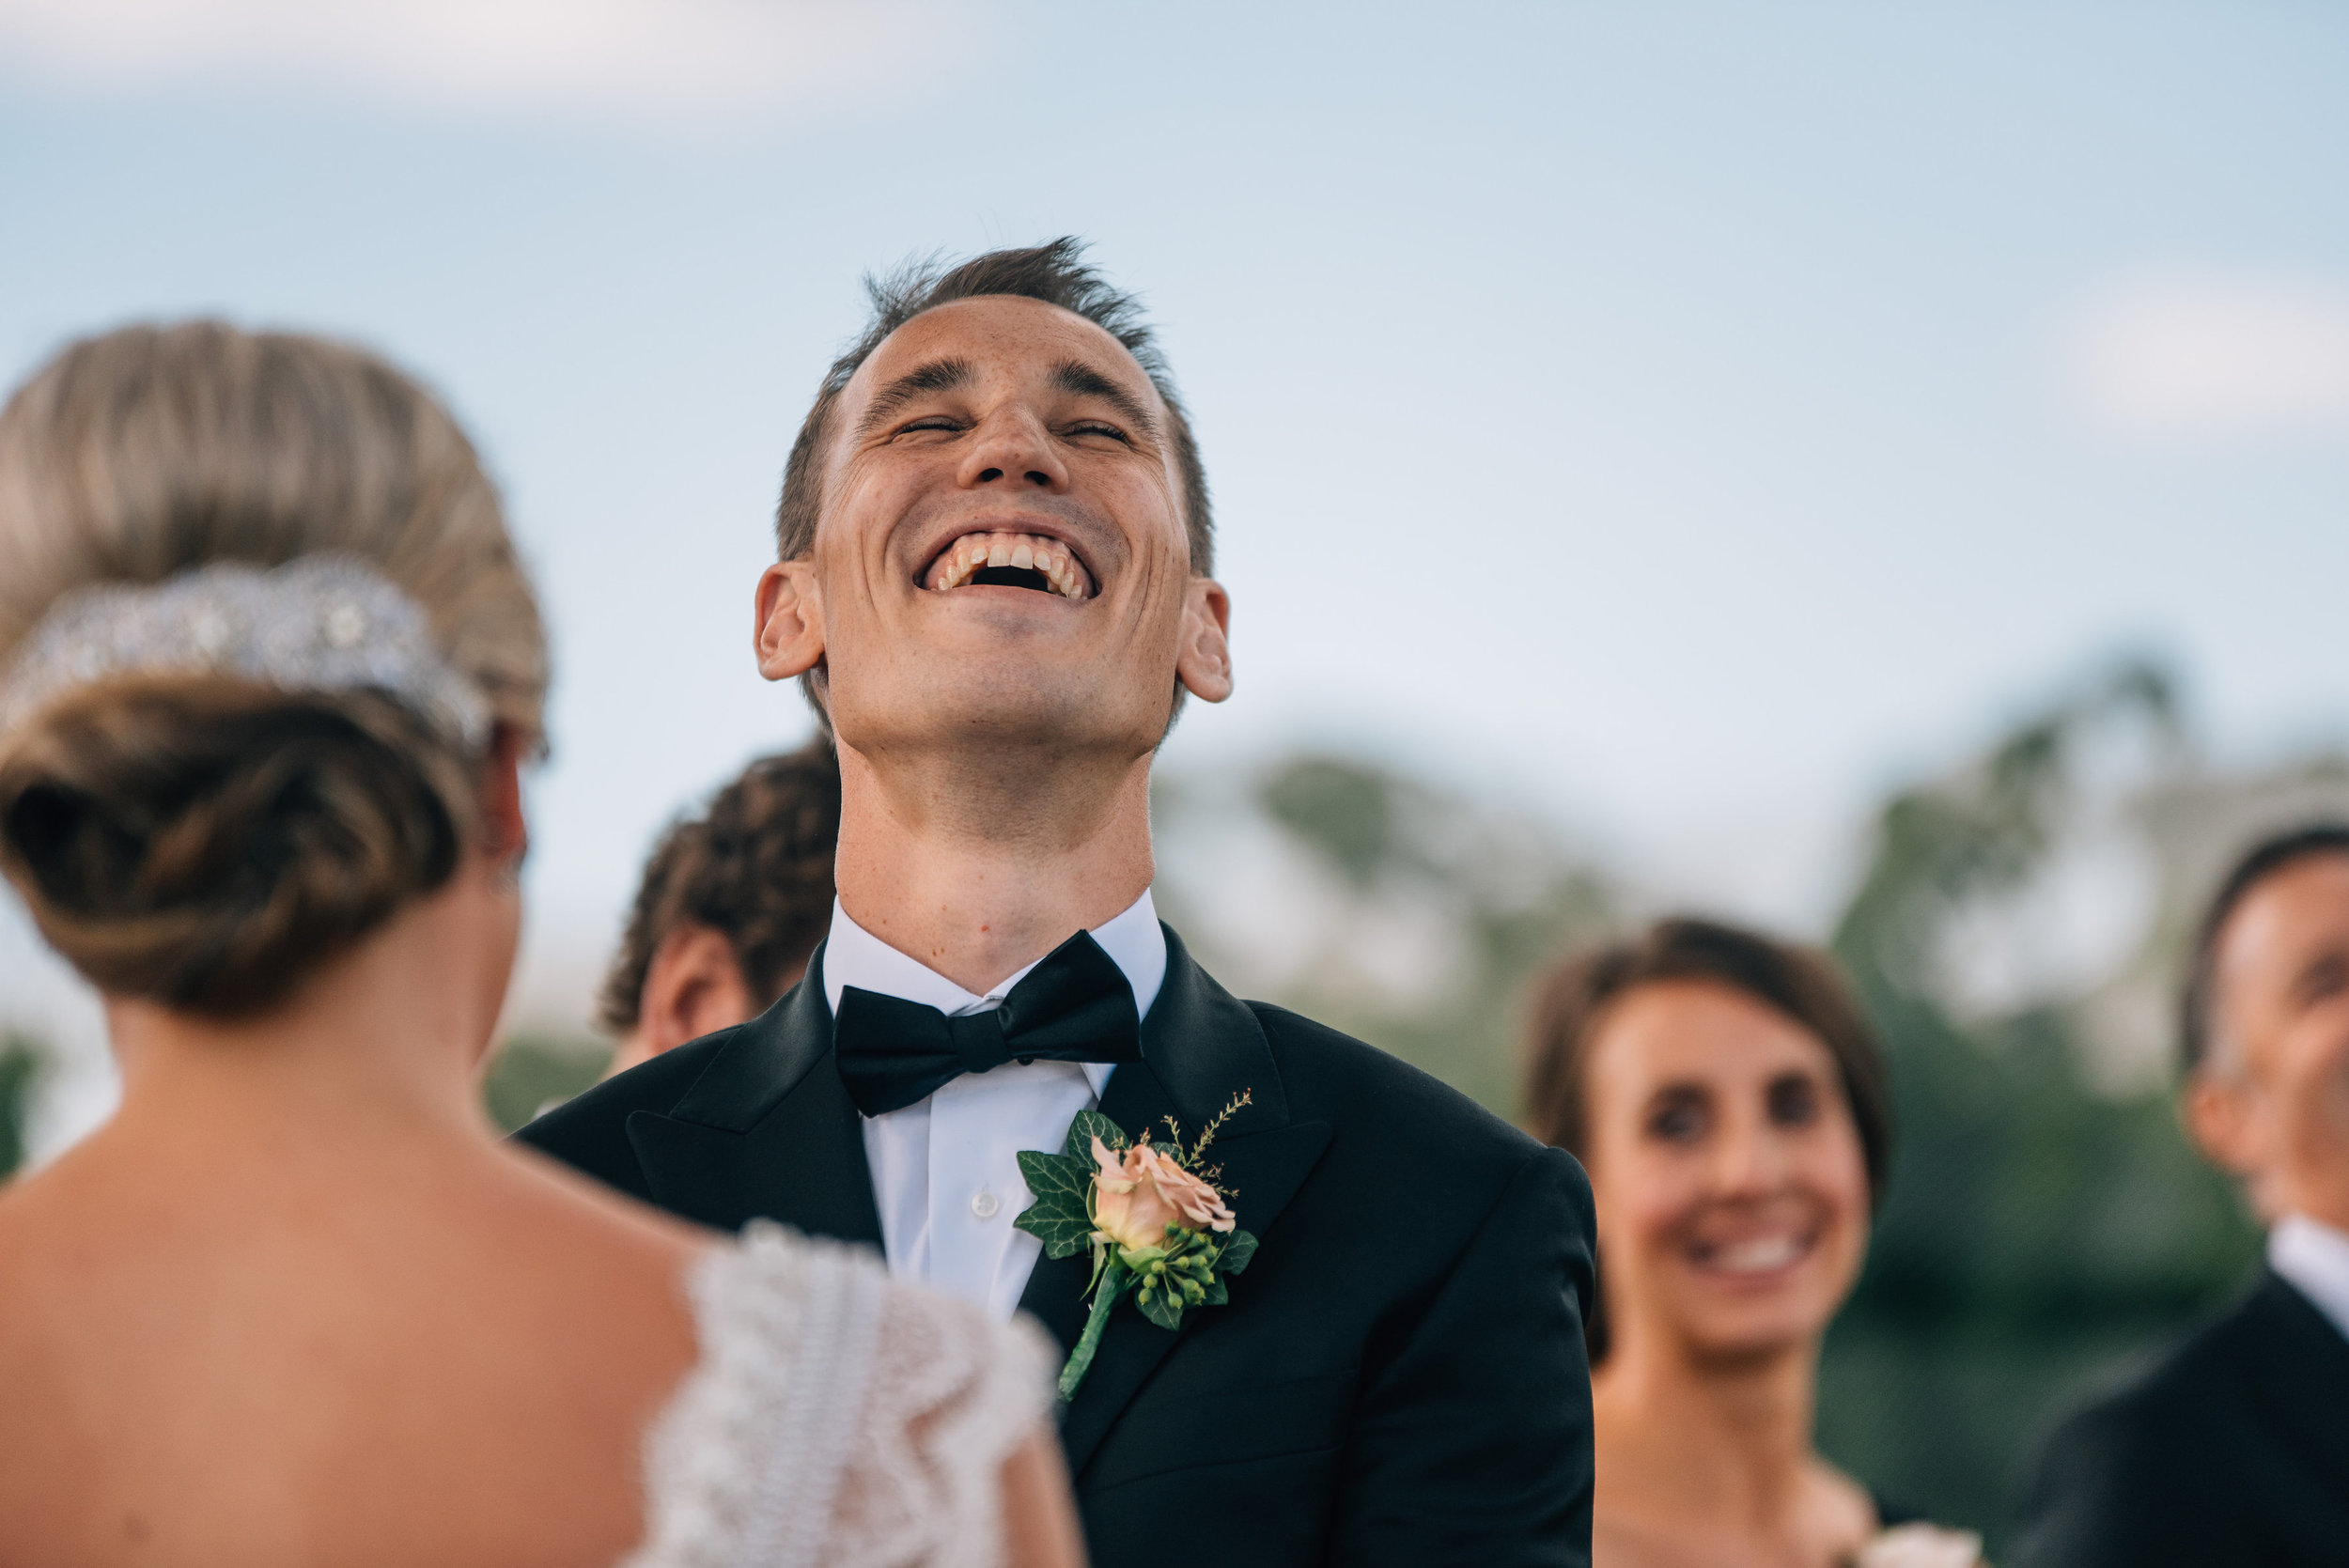 Groom looking very happy at Goaty Hill